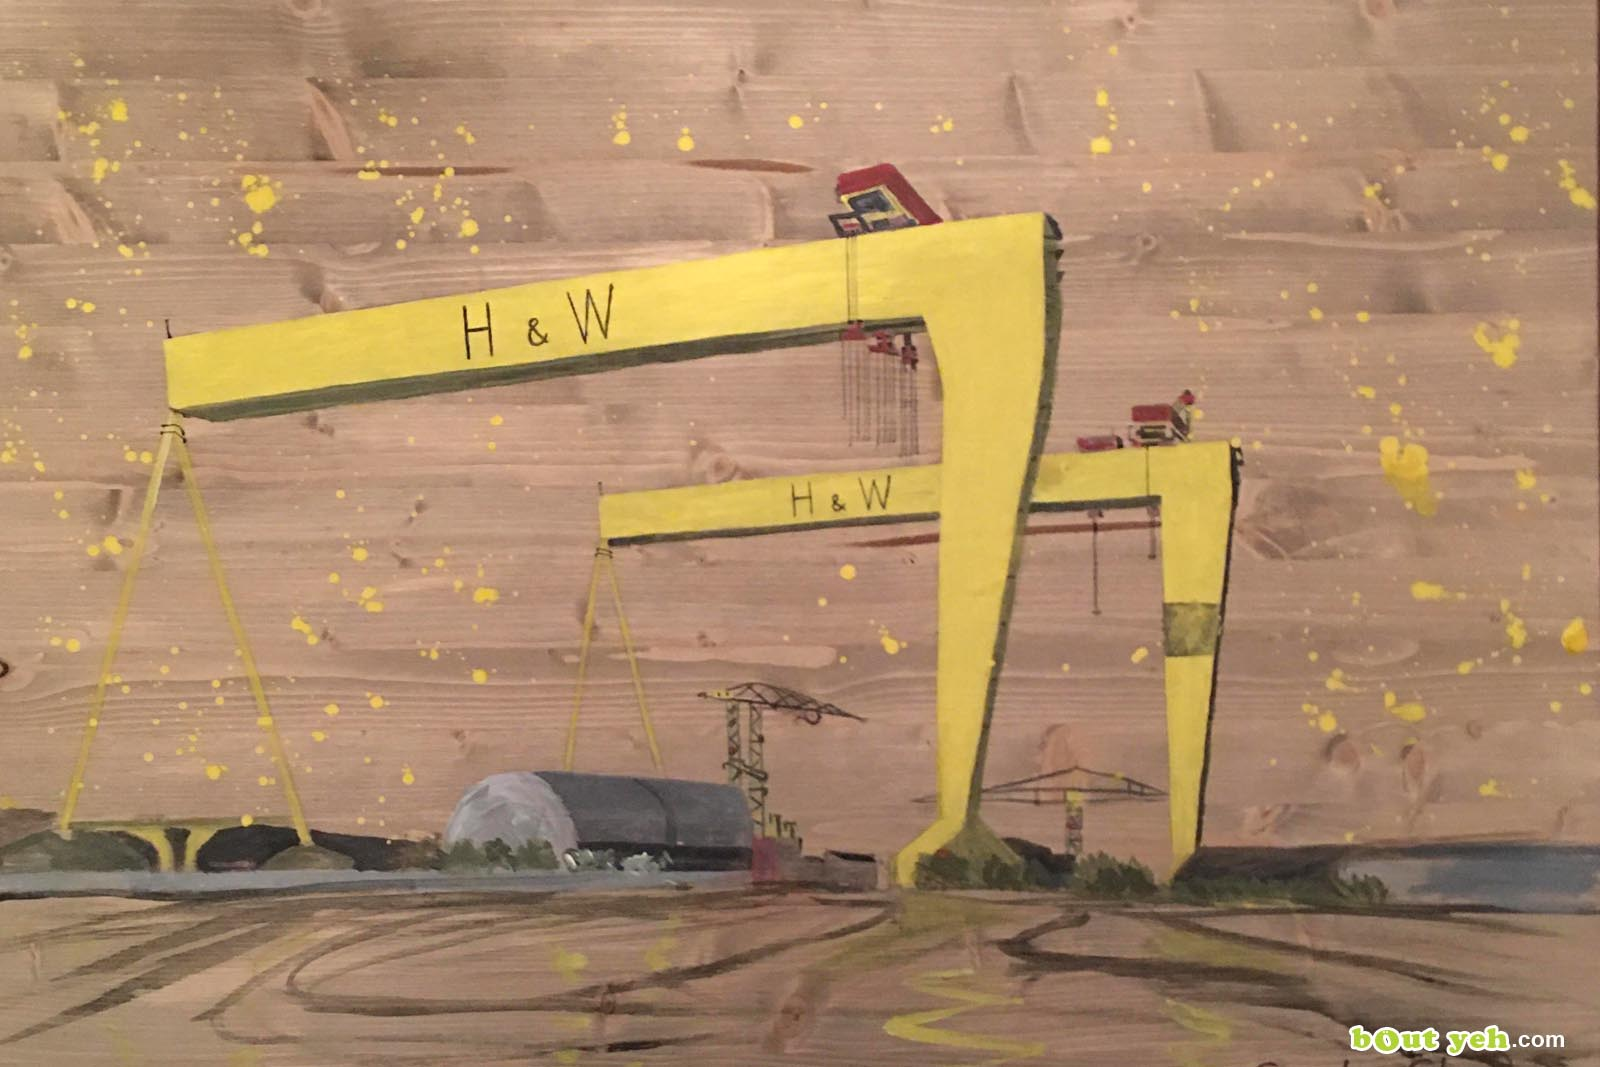 Painting of Harland and Wolff cranes by Sandra Shaw - photo shared by Bout Yeh photography and video production Belfast